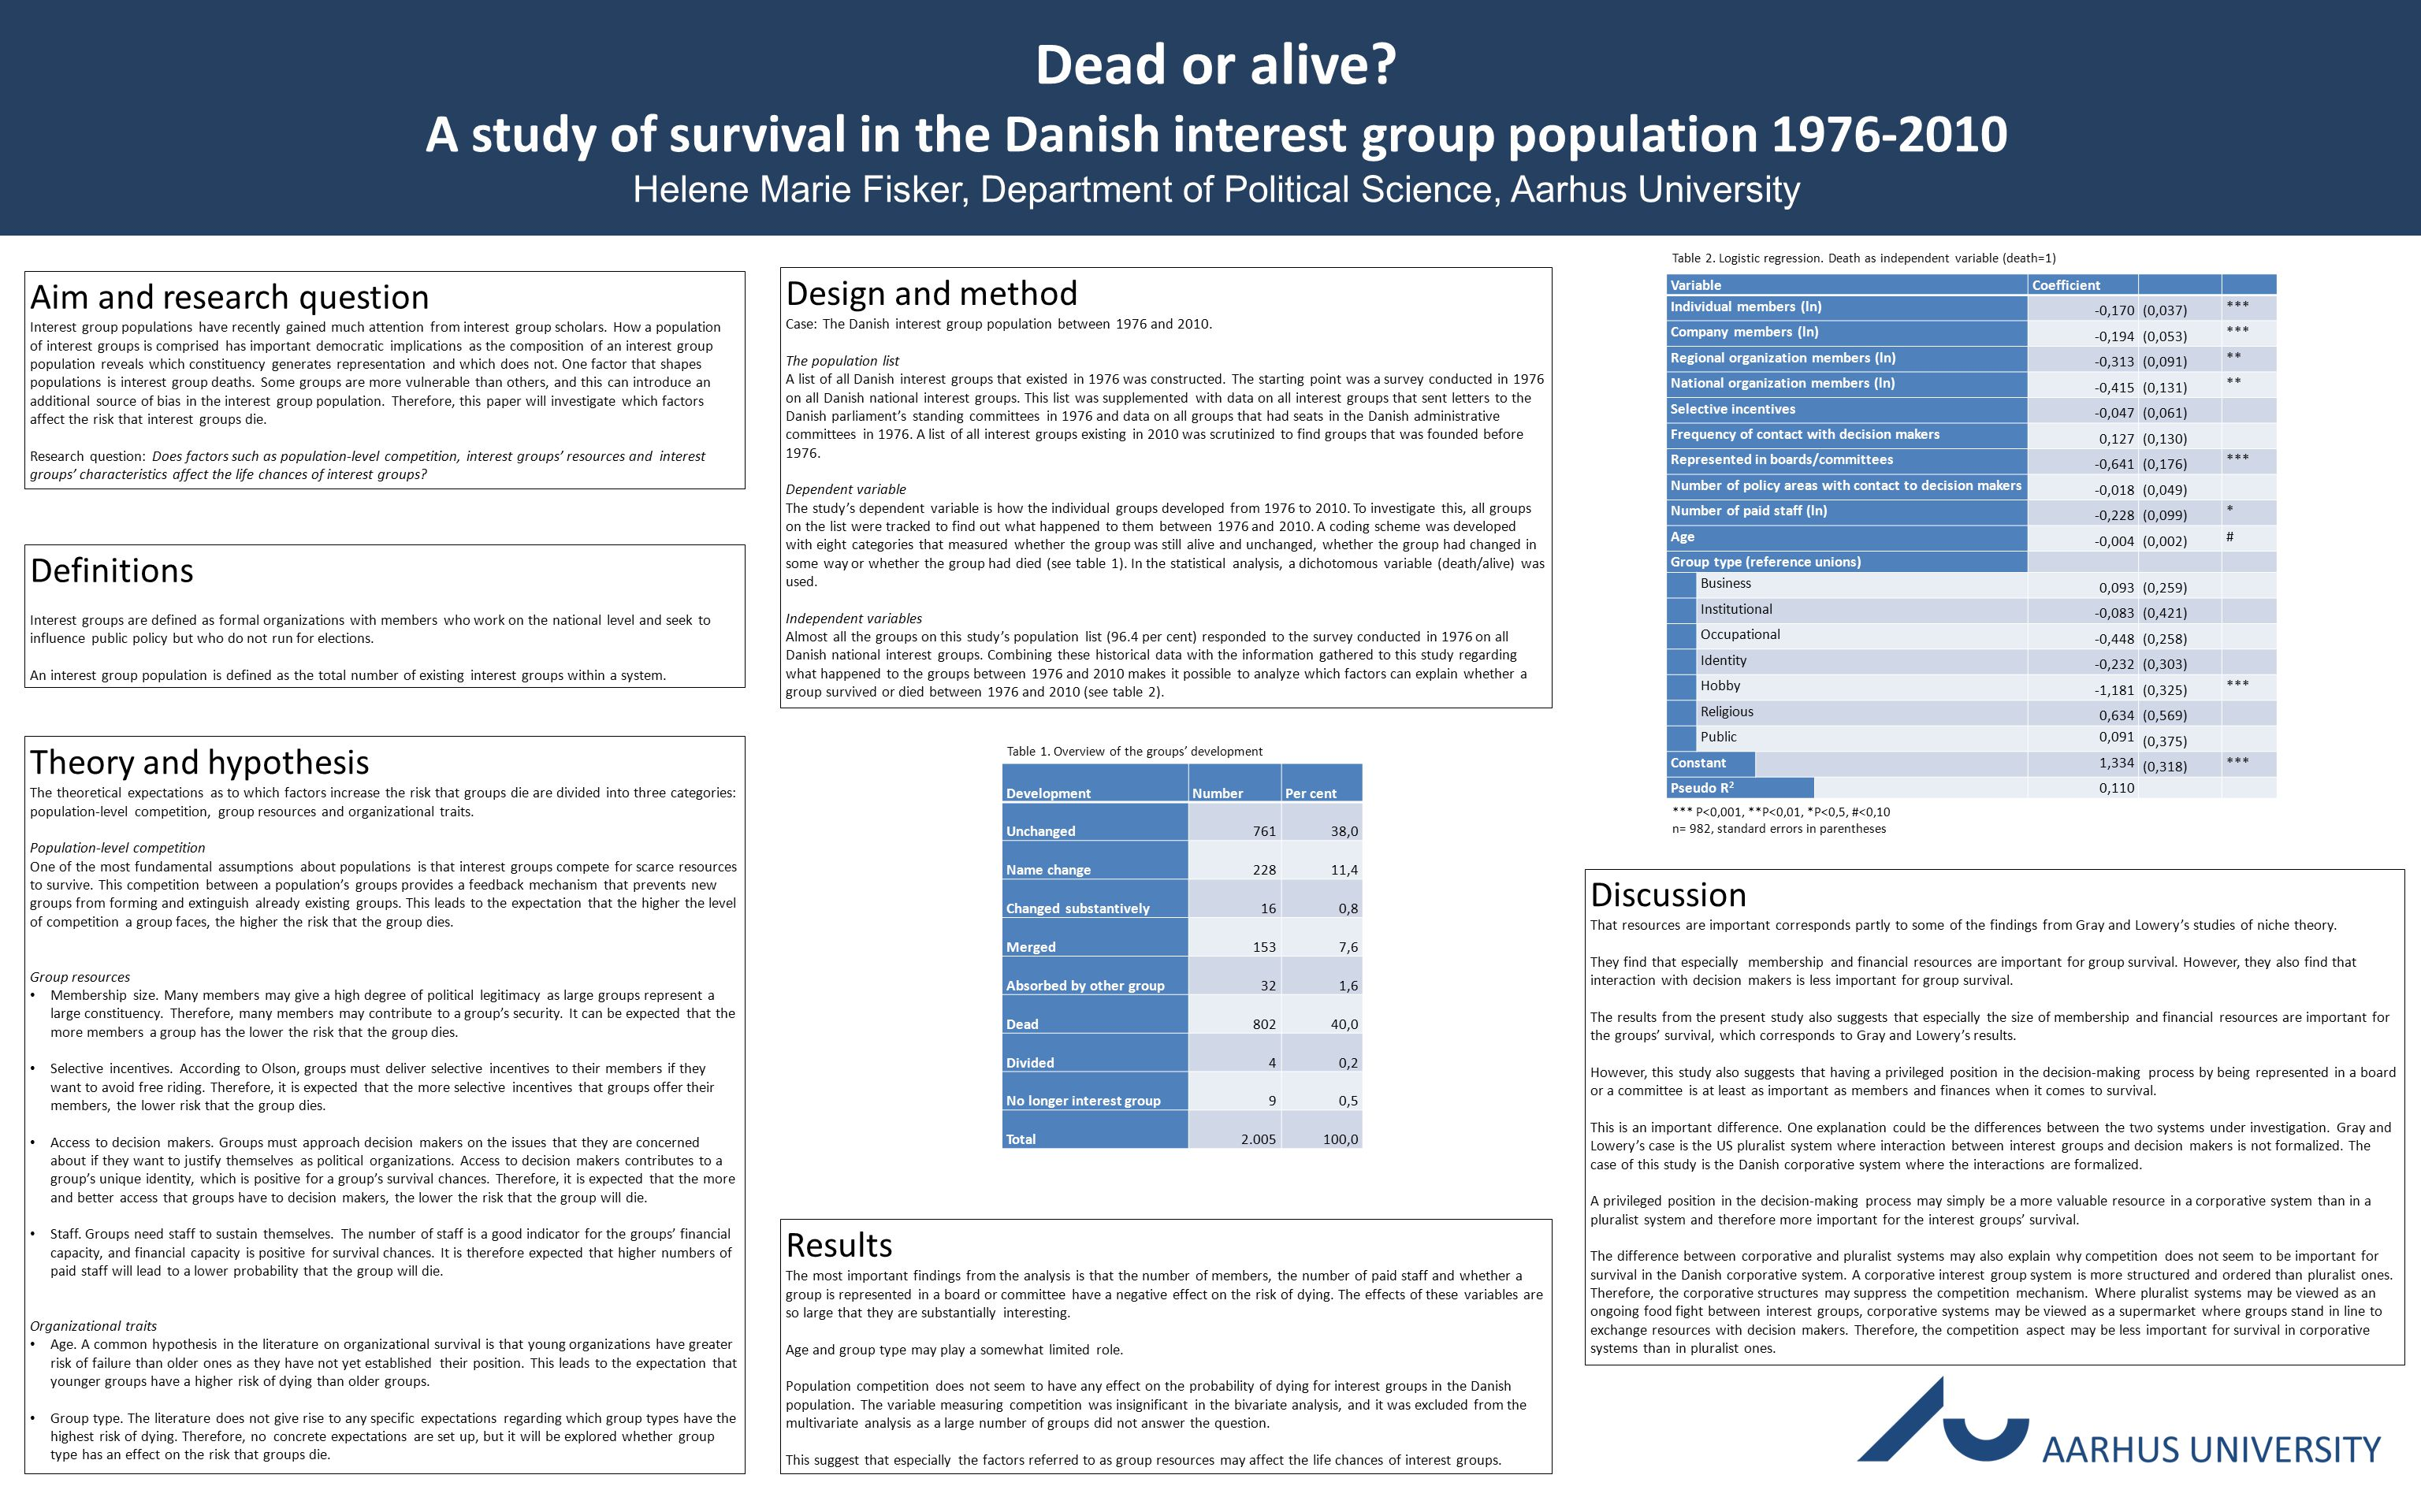 Dead or alive? A study of survival in the Danish interest group population 1976-2010 Helene Marie Fisker, Department of Political Science, Aarhus Univ